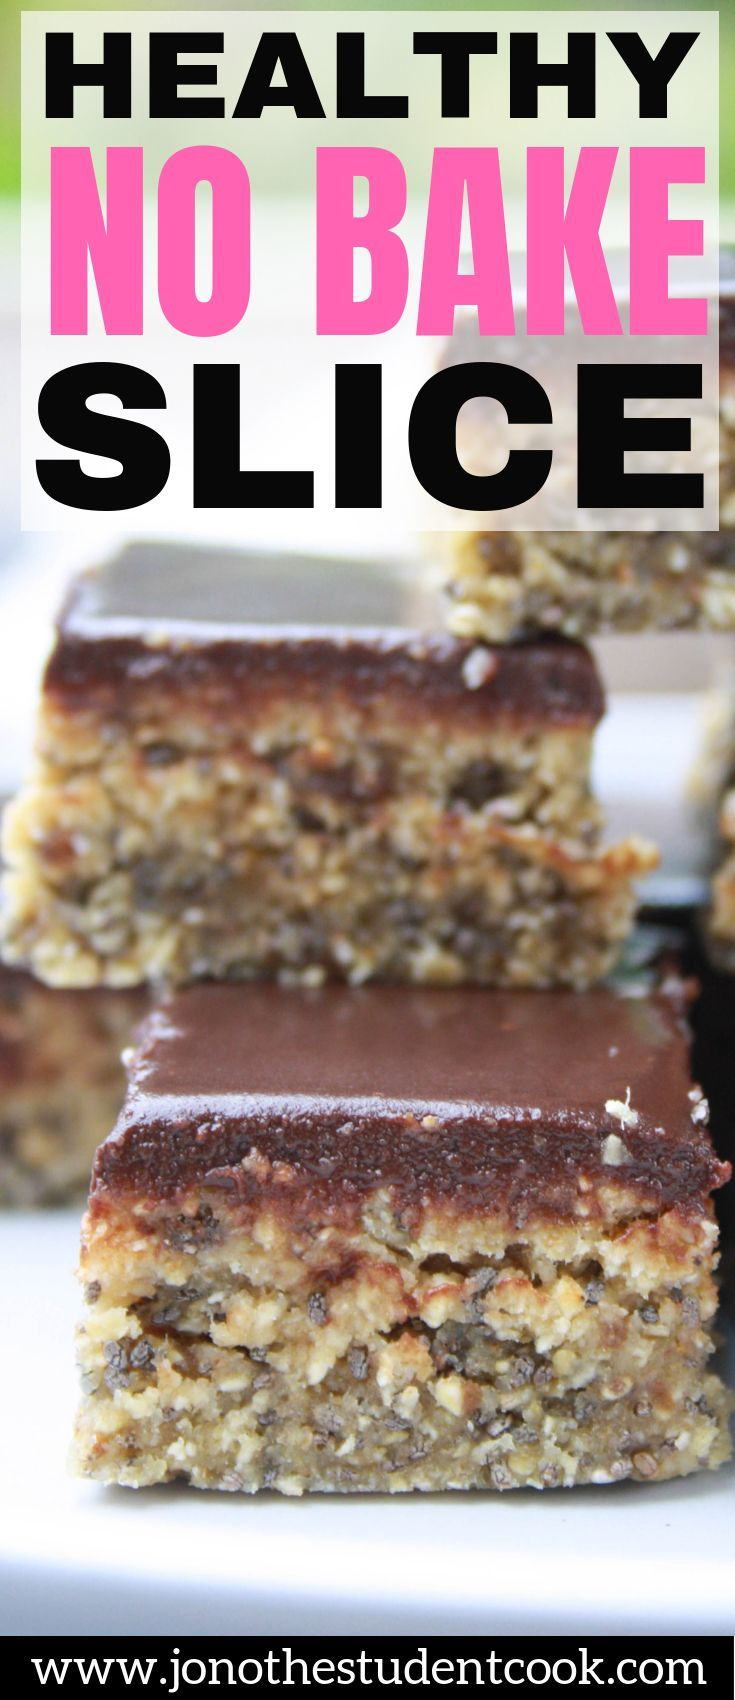 Healthy No Bake Slice #cleaneating